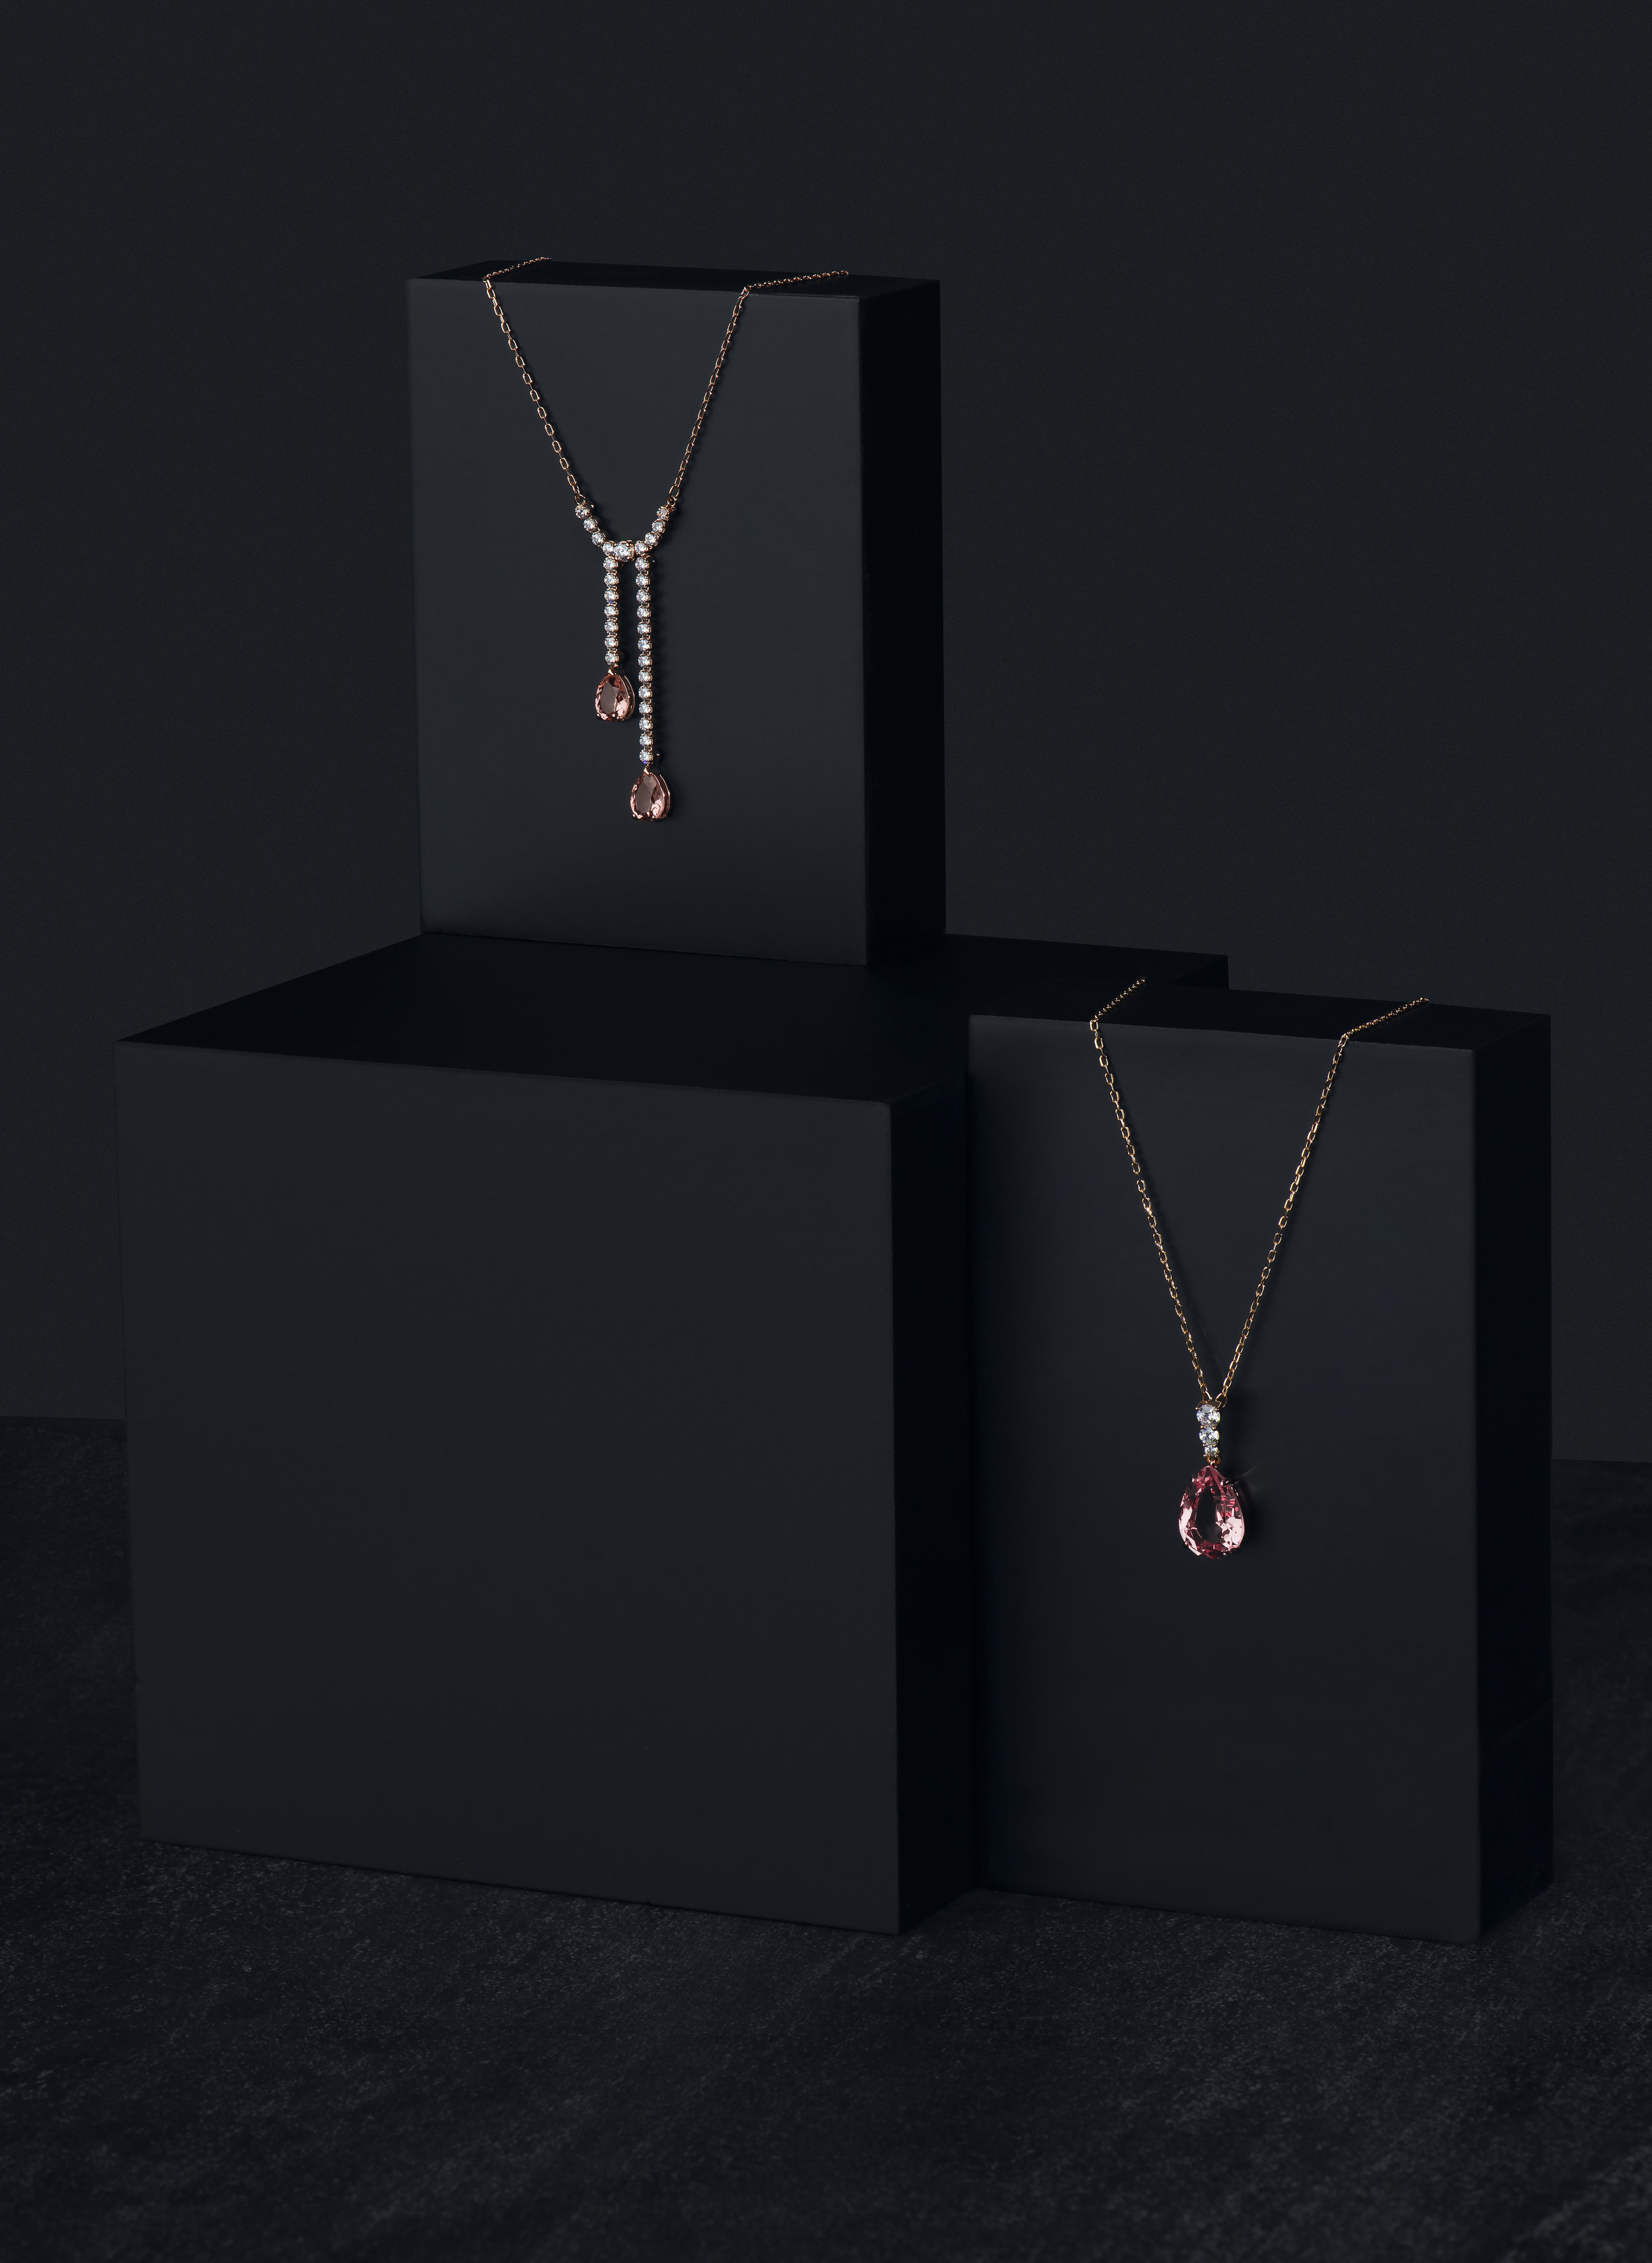 Swarovski-necklace-1.jpg